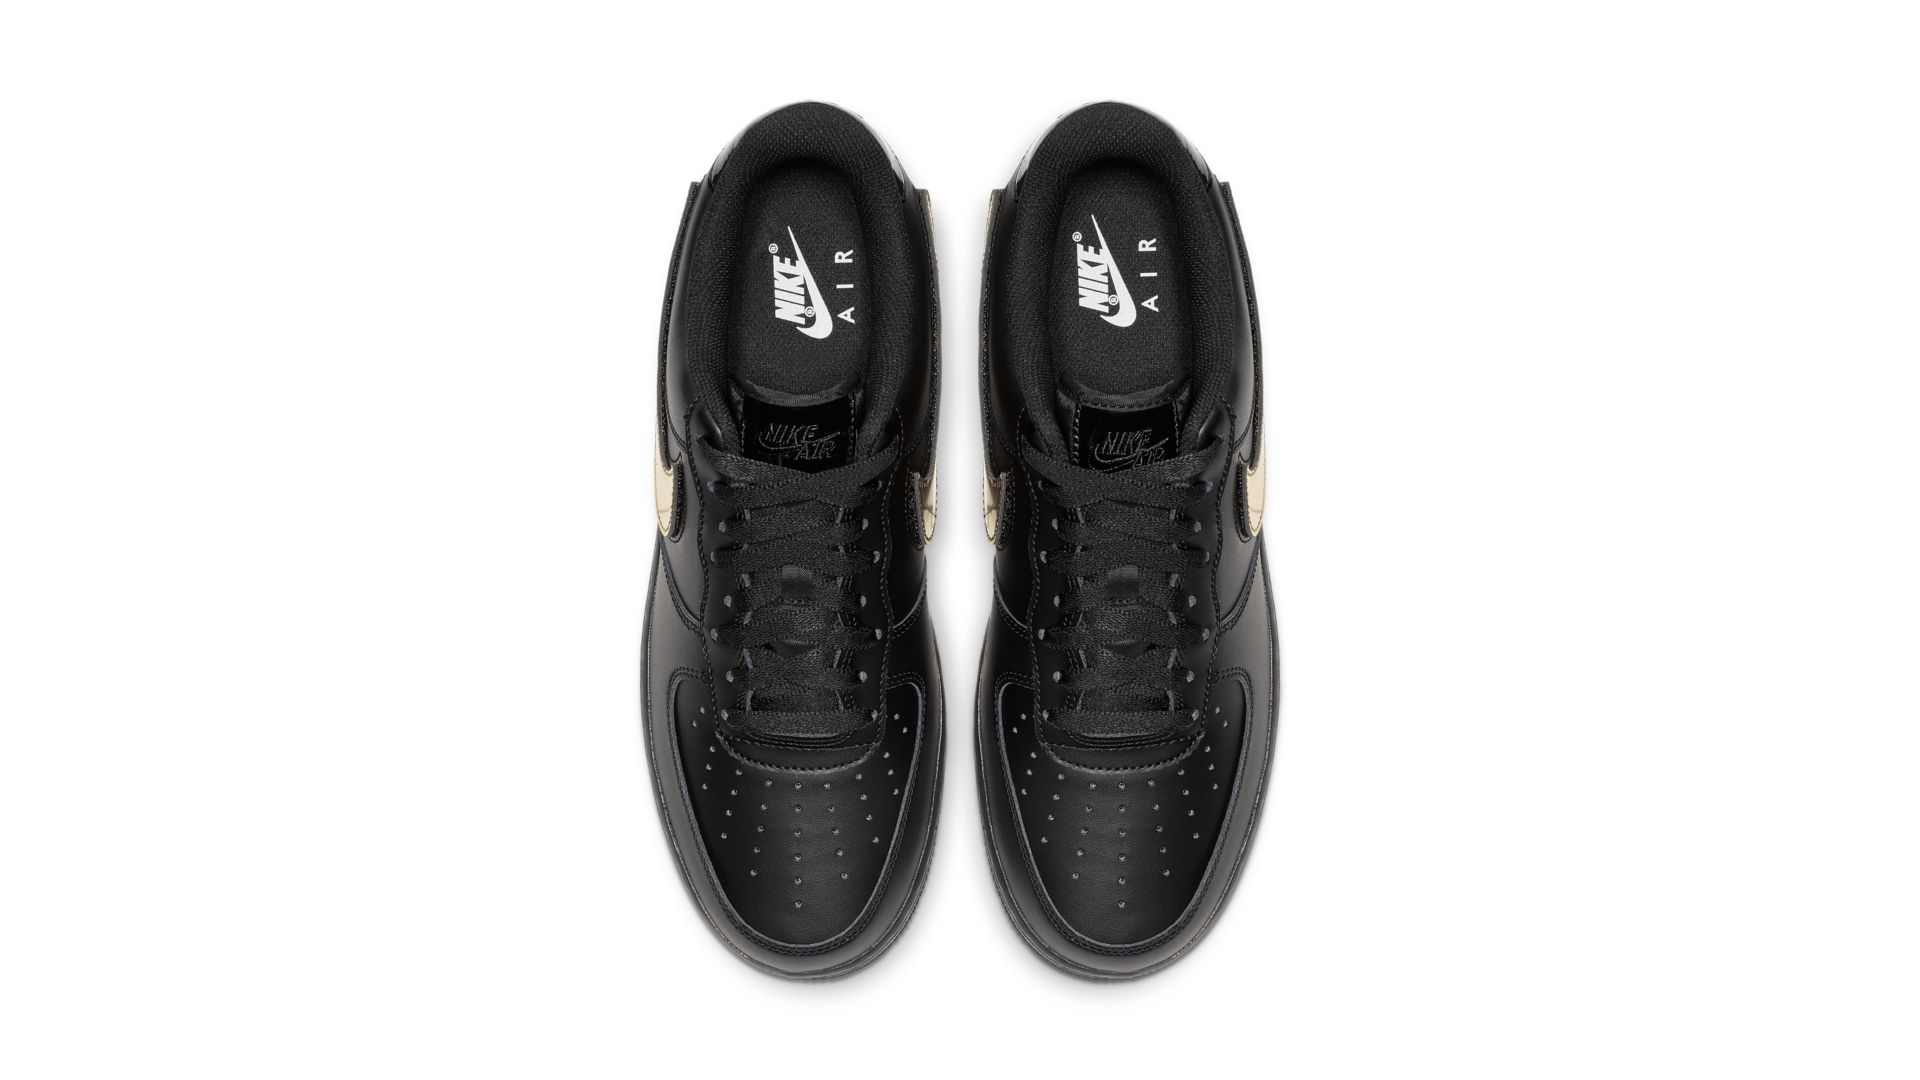 Nike Air Force 1 Black Metallic Gold (CT2252-001)